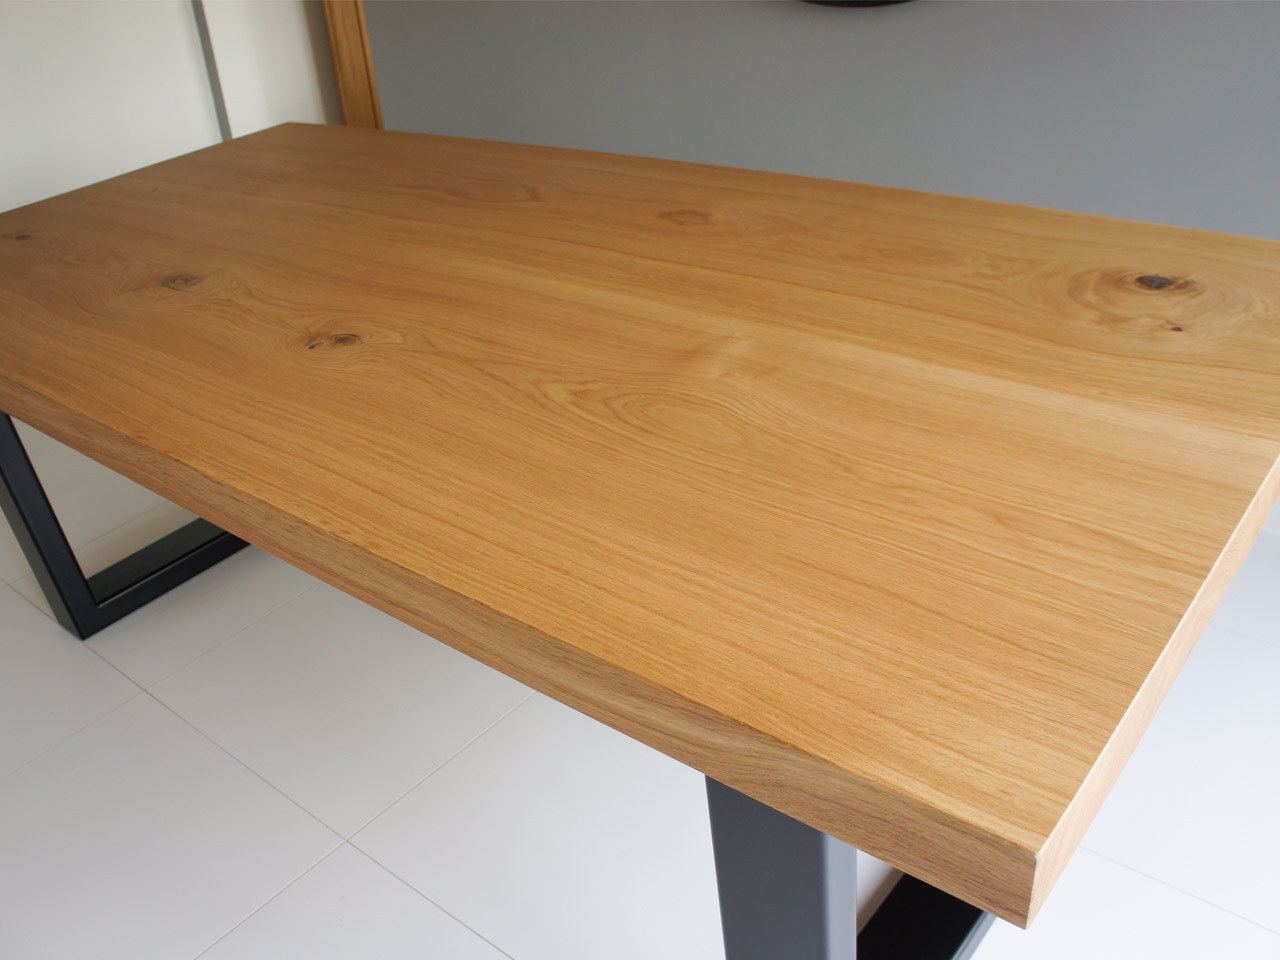 abacus-tables-project-836-pic-4